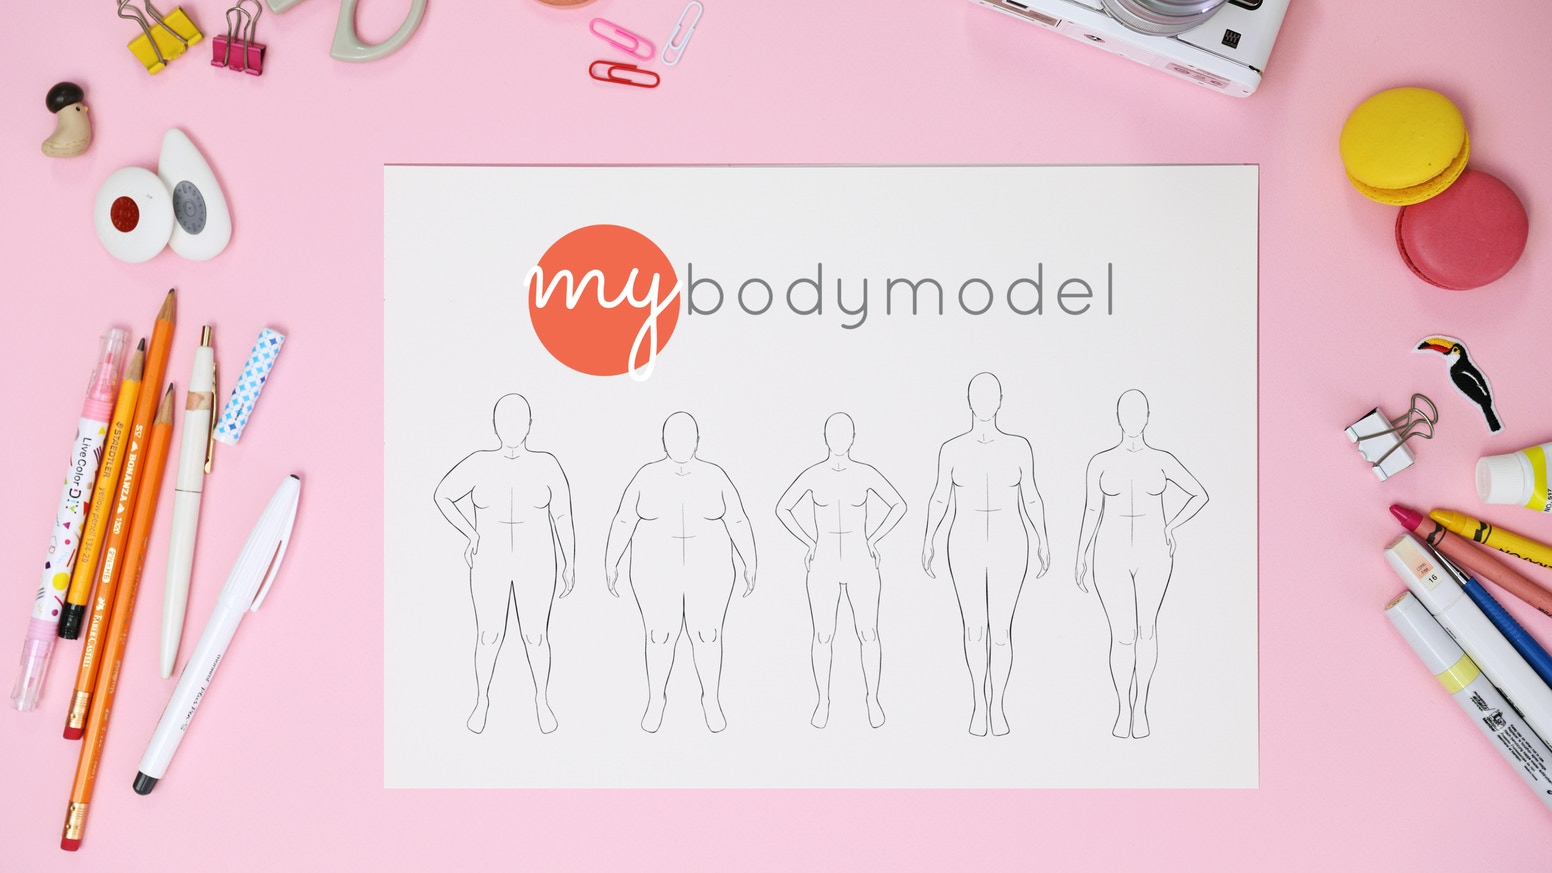 Mybodymodel fashion sketch templates to your measurements by mybodymodel fashion sketch templates to your measurements thanks to 725 makers designers and champions of body diversity mybodymodel beta pronofoot35fo Choice Image